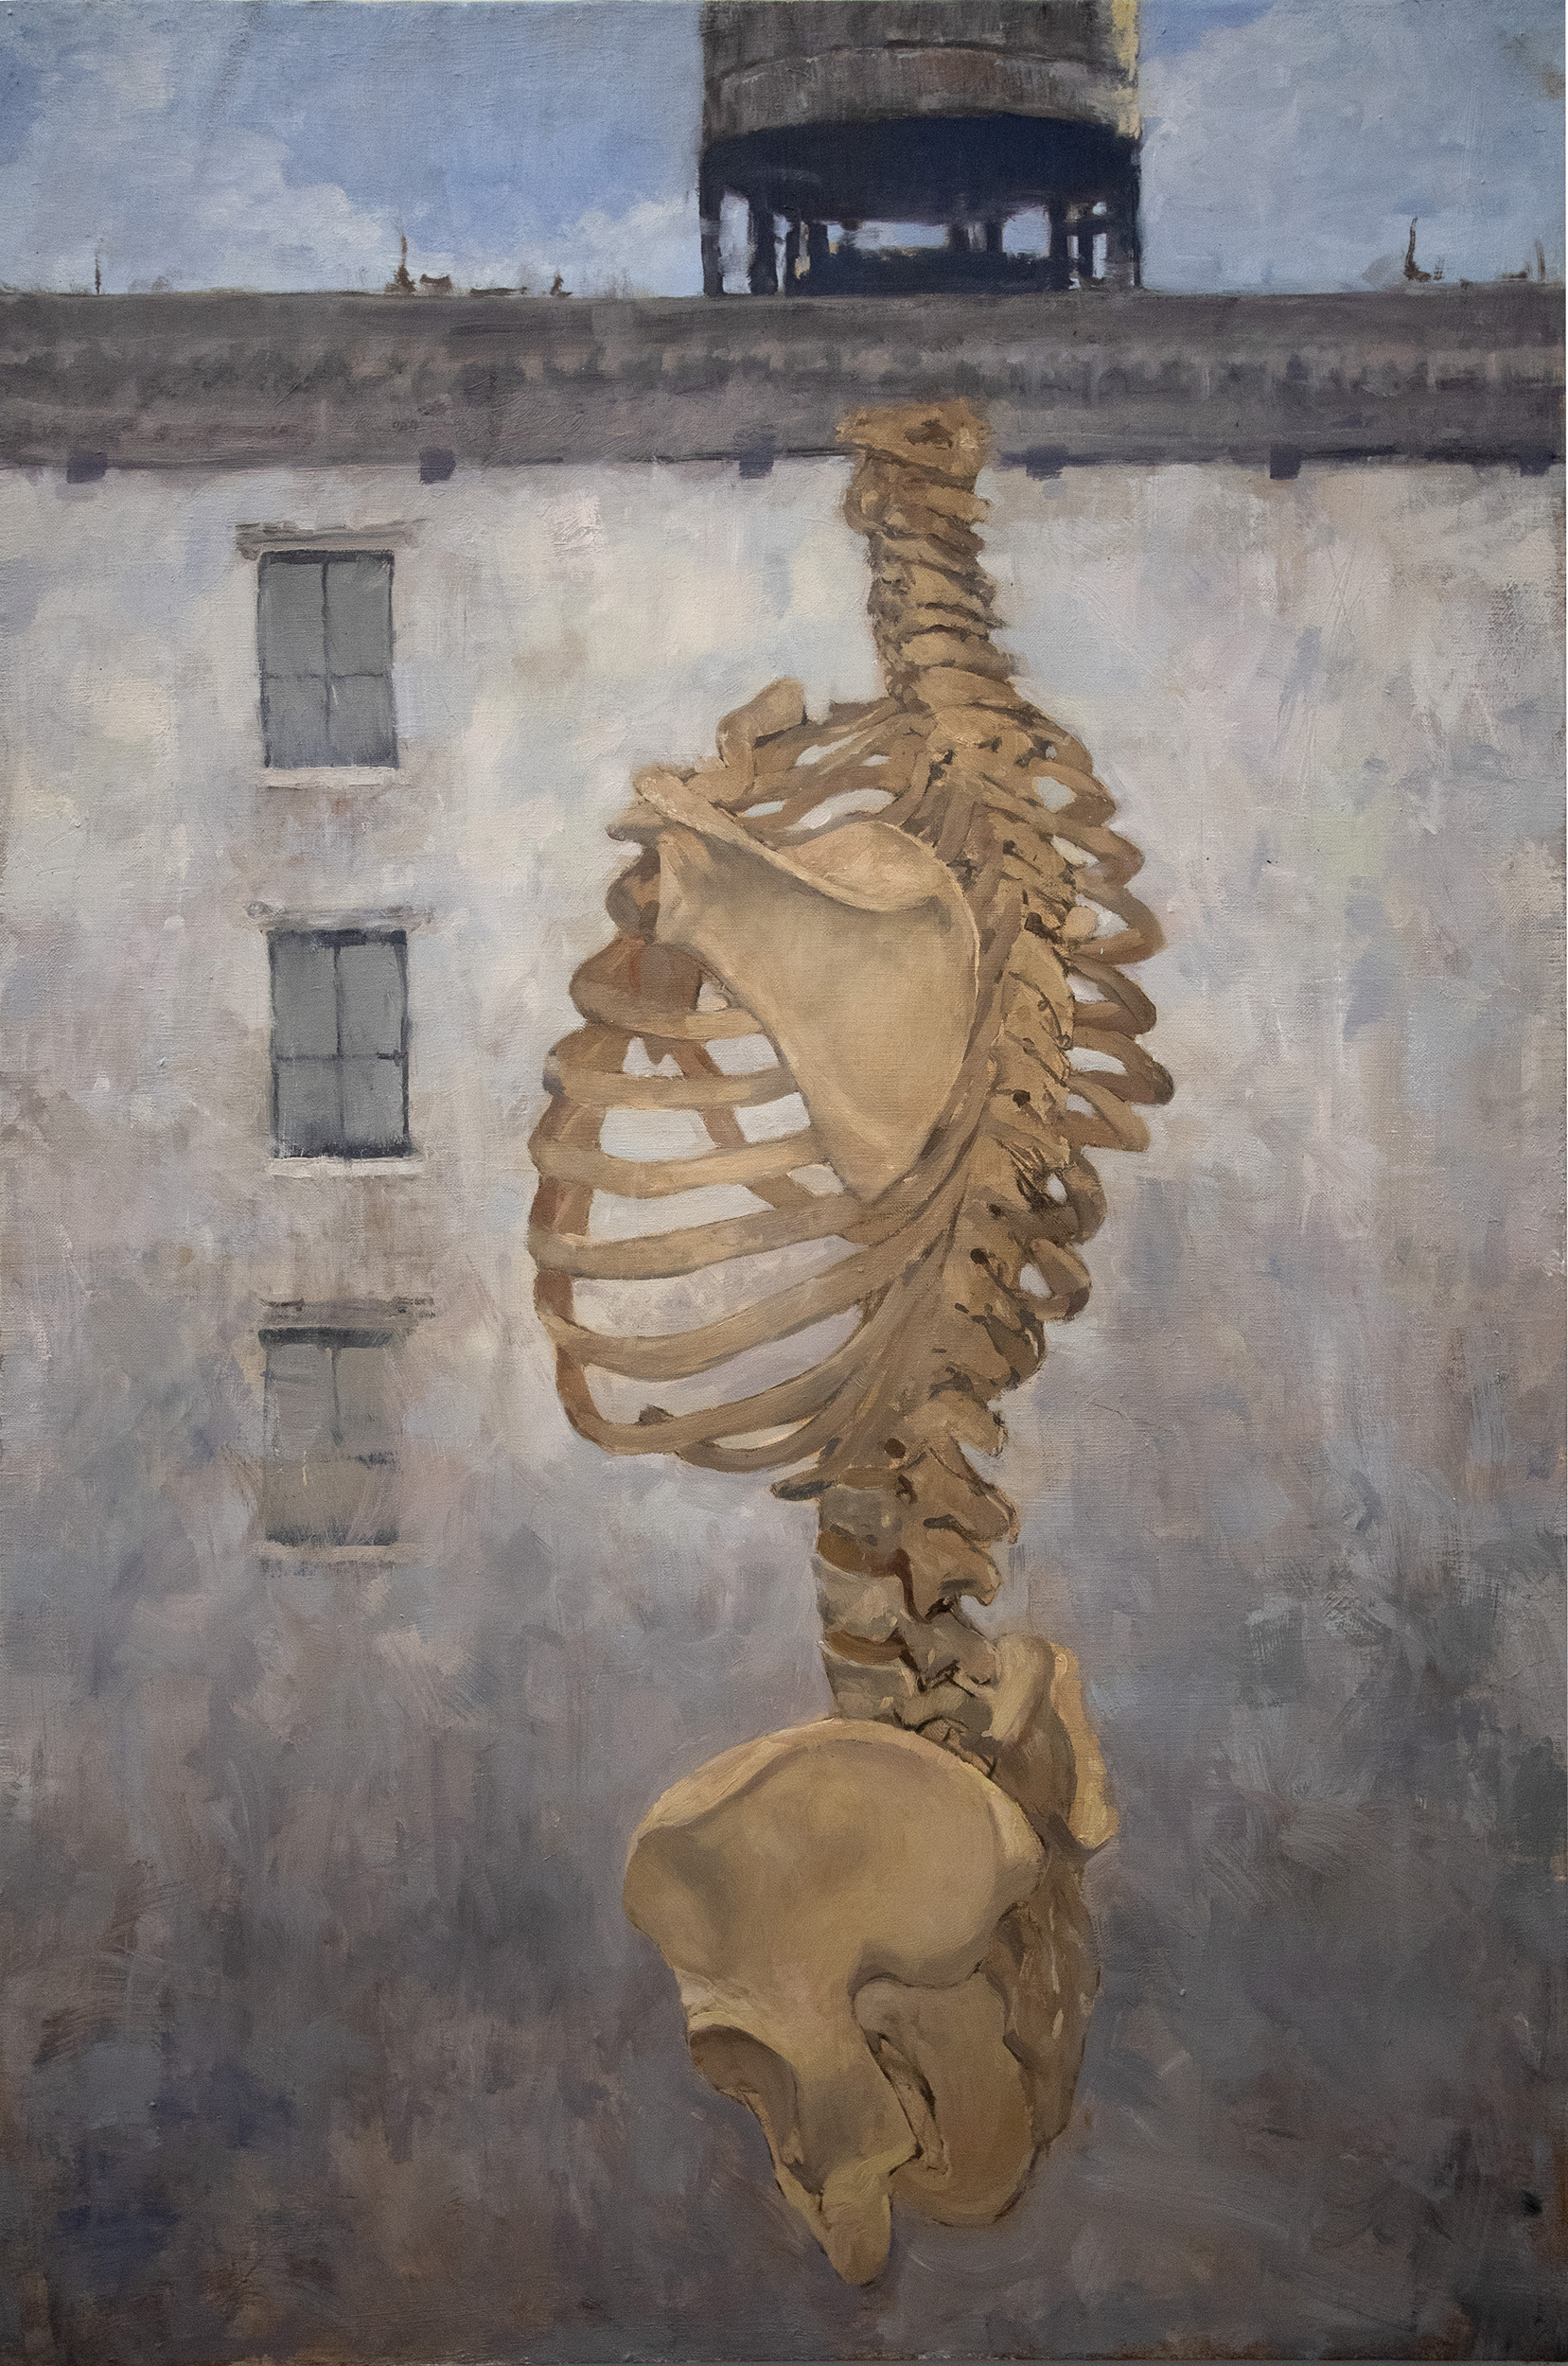 'Body as Architecture' a surrealist painting depicting a partial skeleton in front of a bare building.